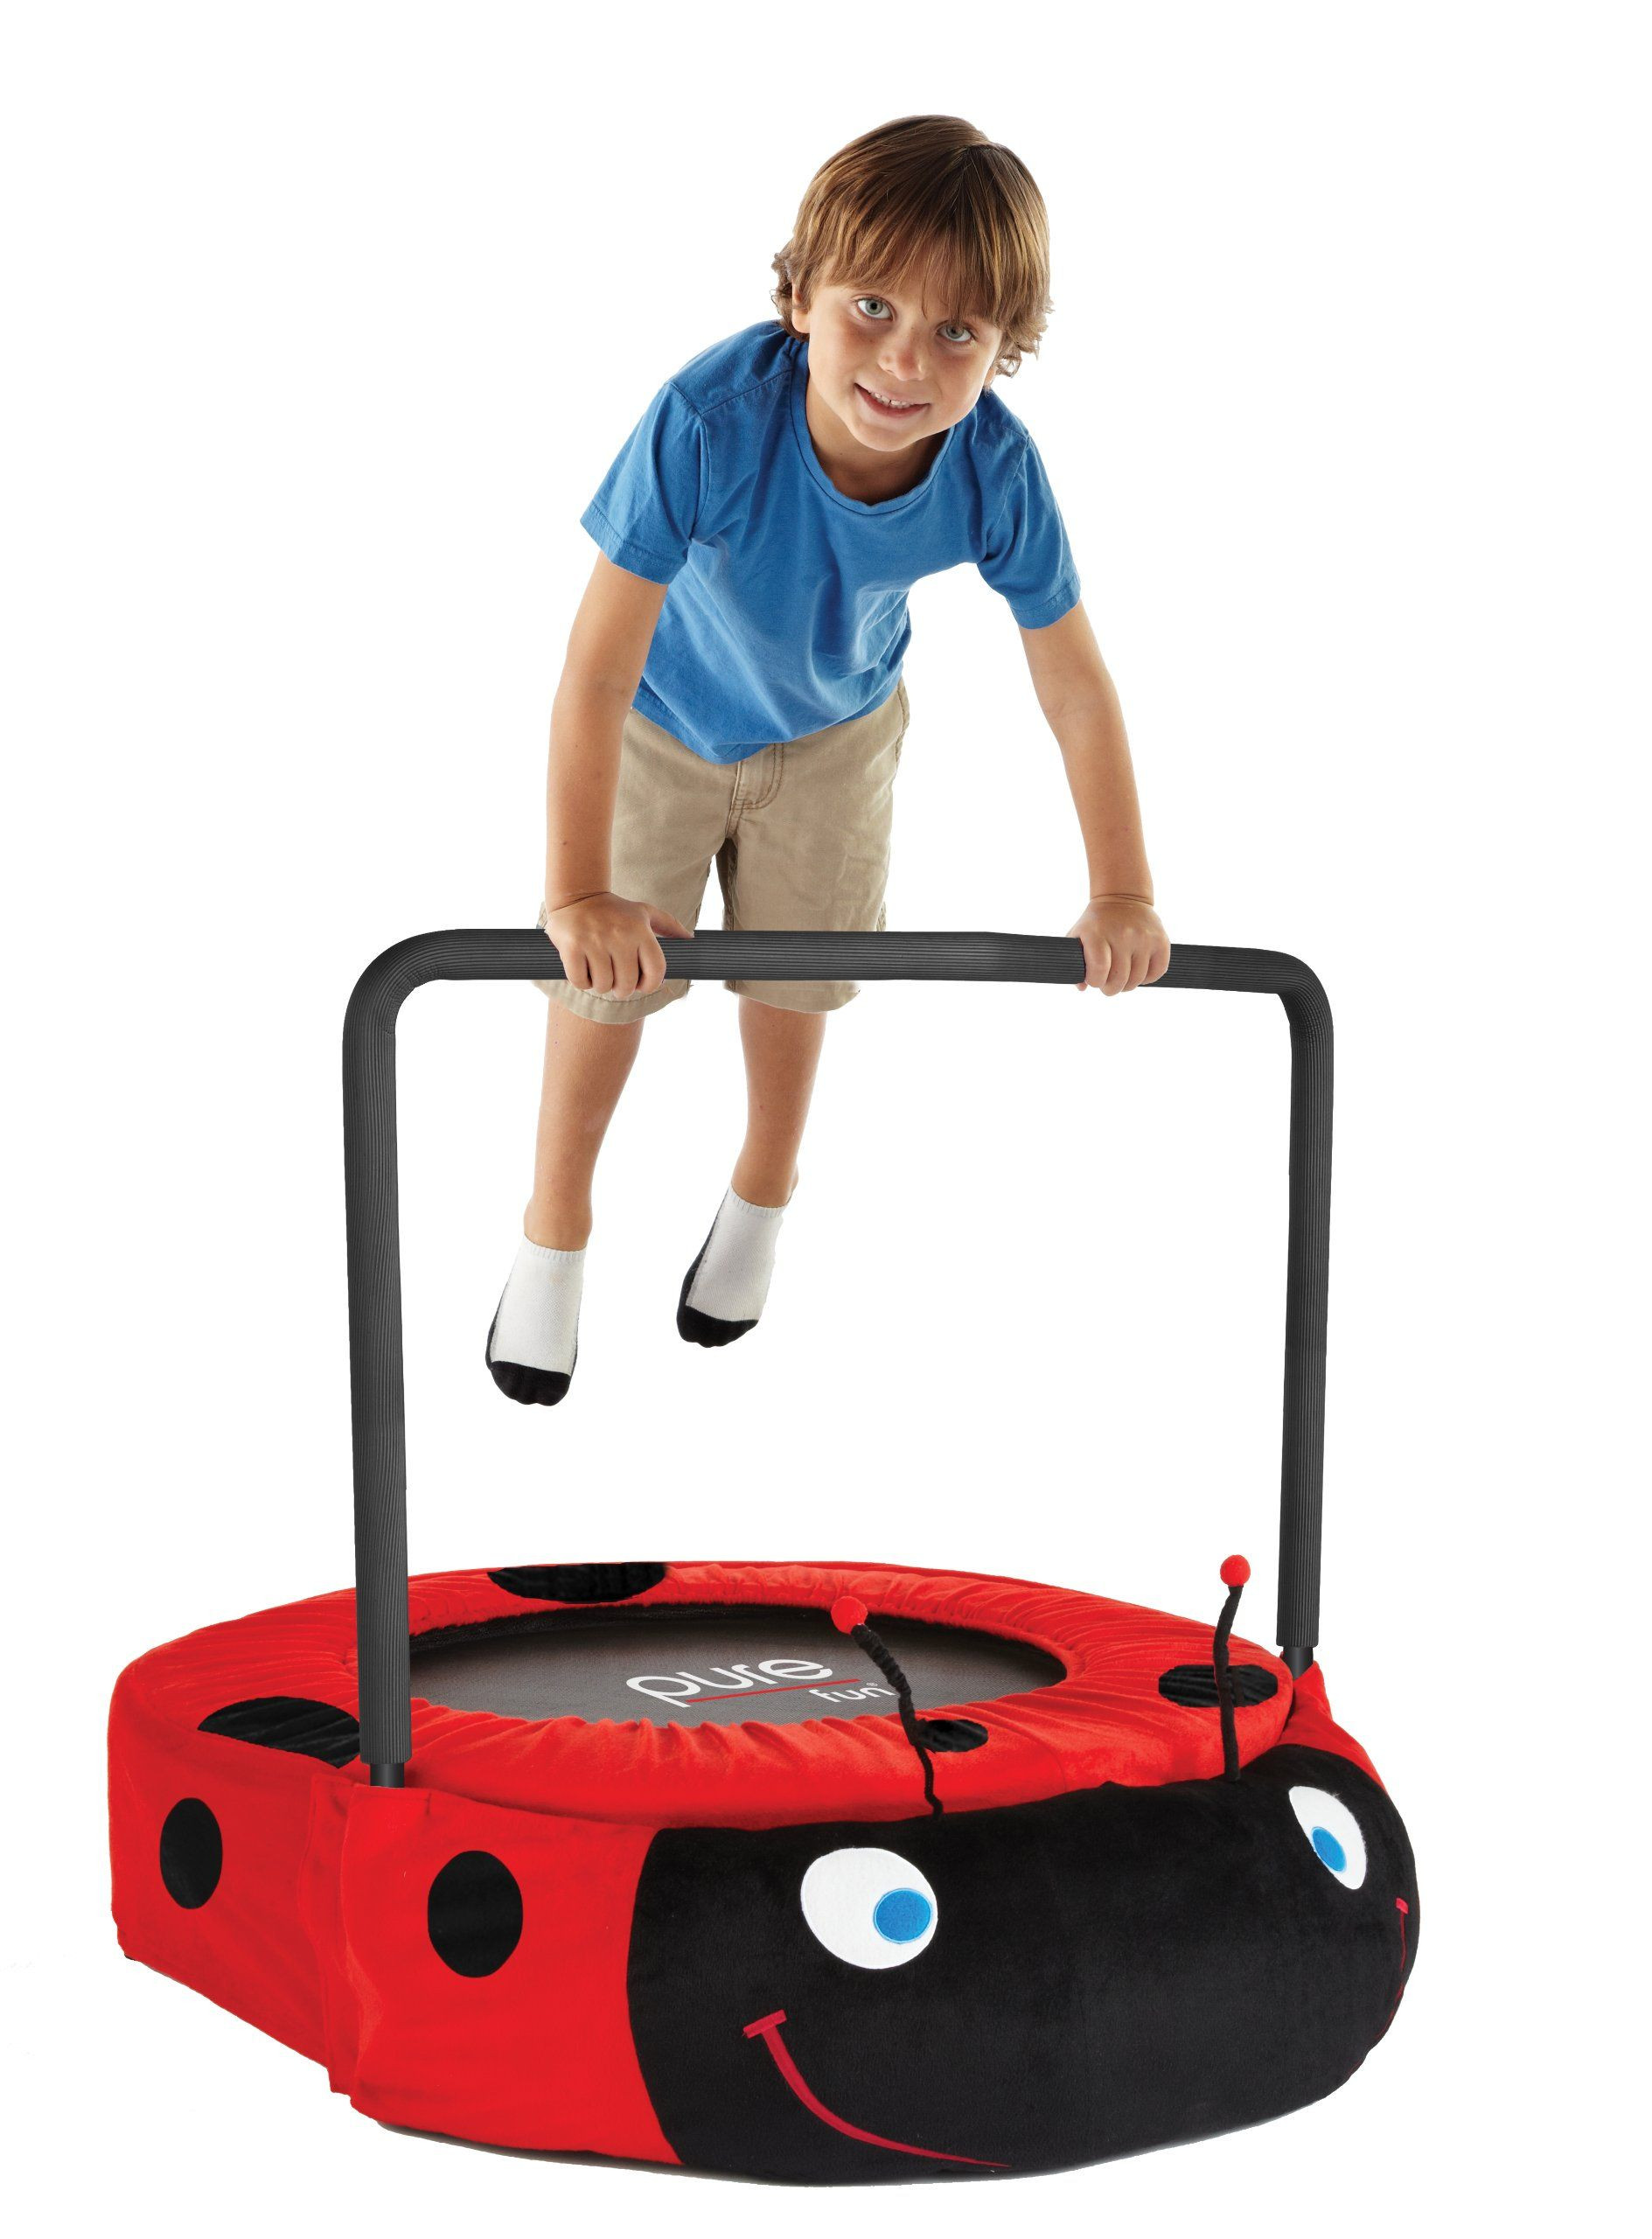 Gift Ideas For Boys Age 5  Best Gifts and Toys for 5 Year Old Boys